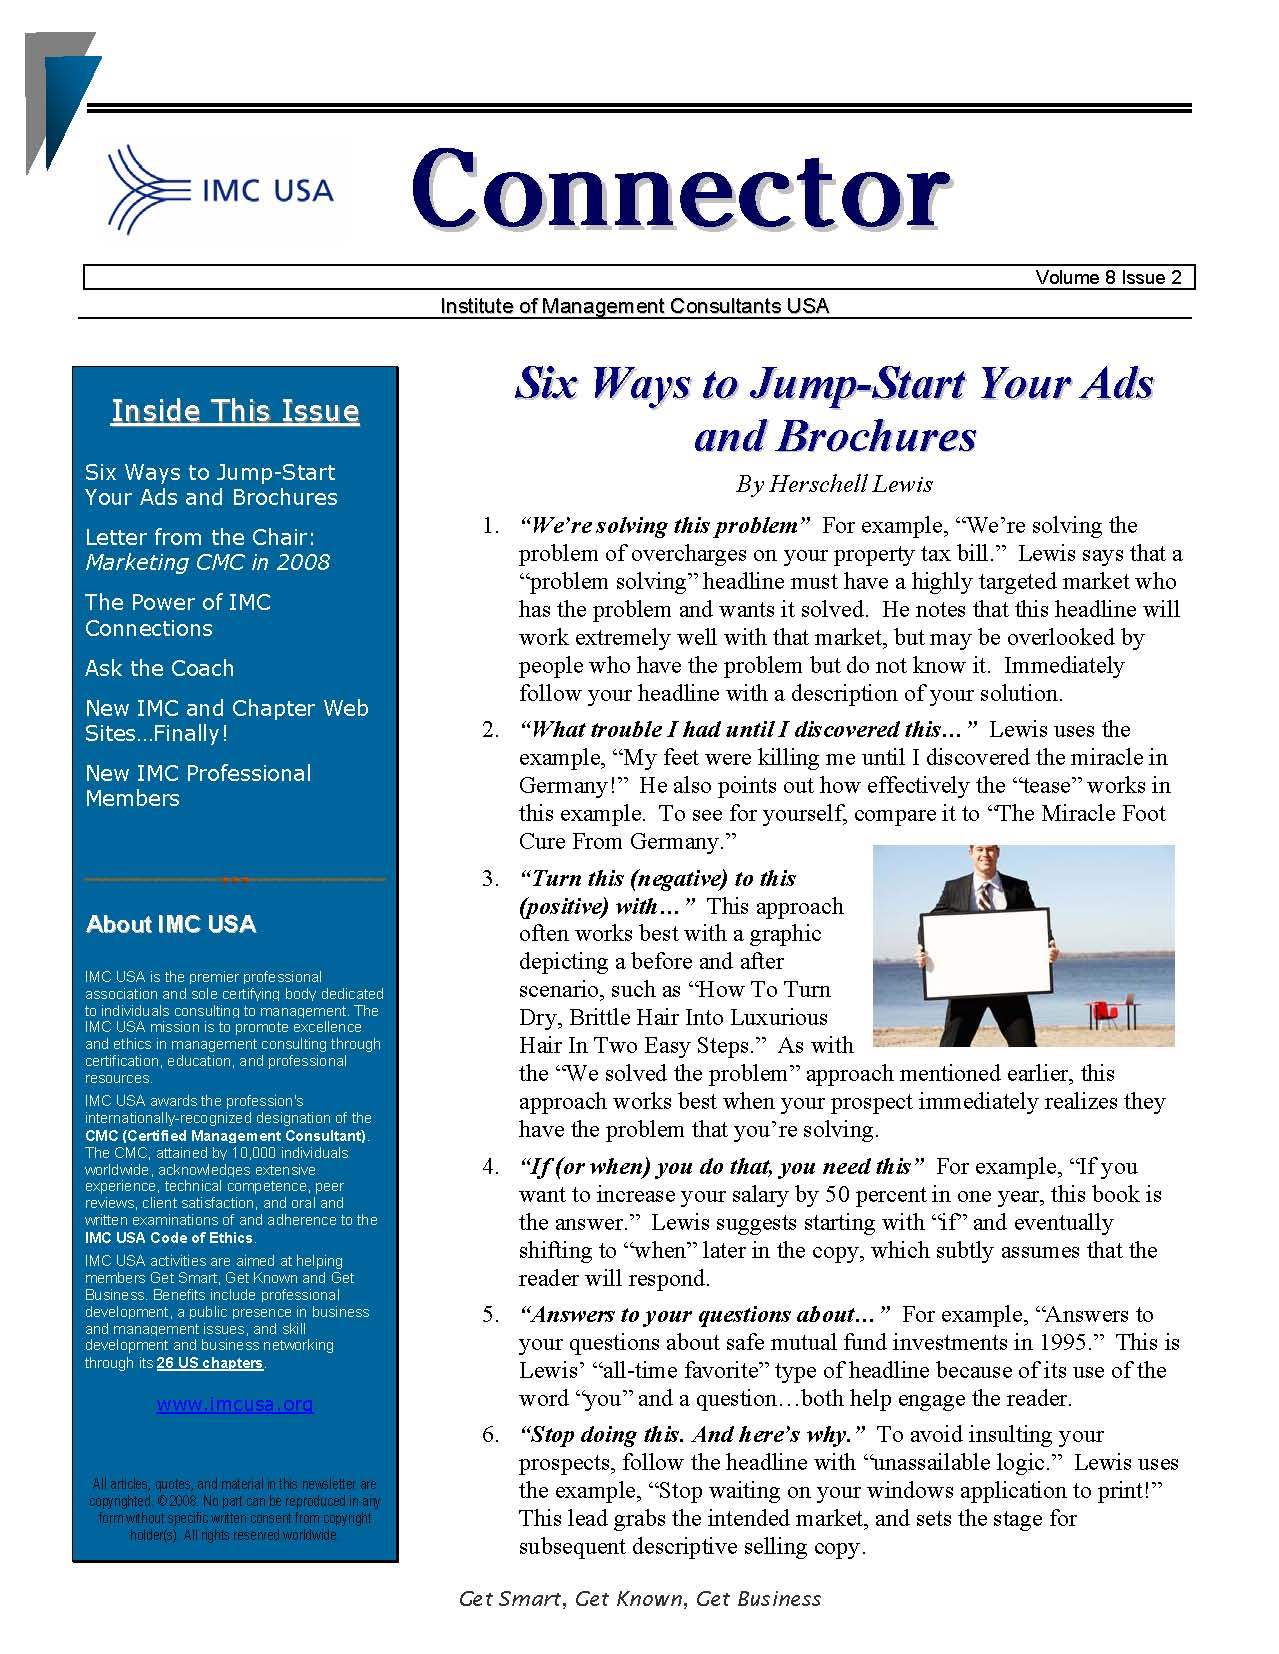 Email marketing boiler plate newsletters free newsletter for Free online newsletter templates pdf